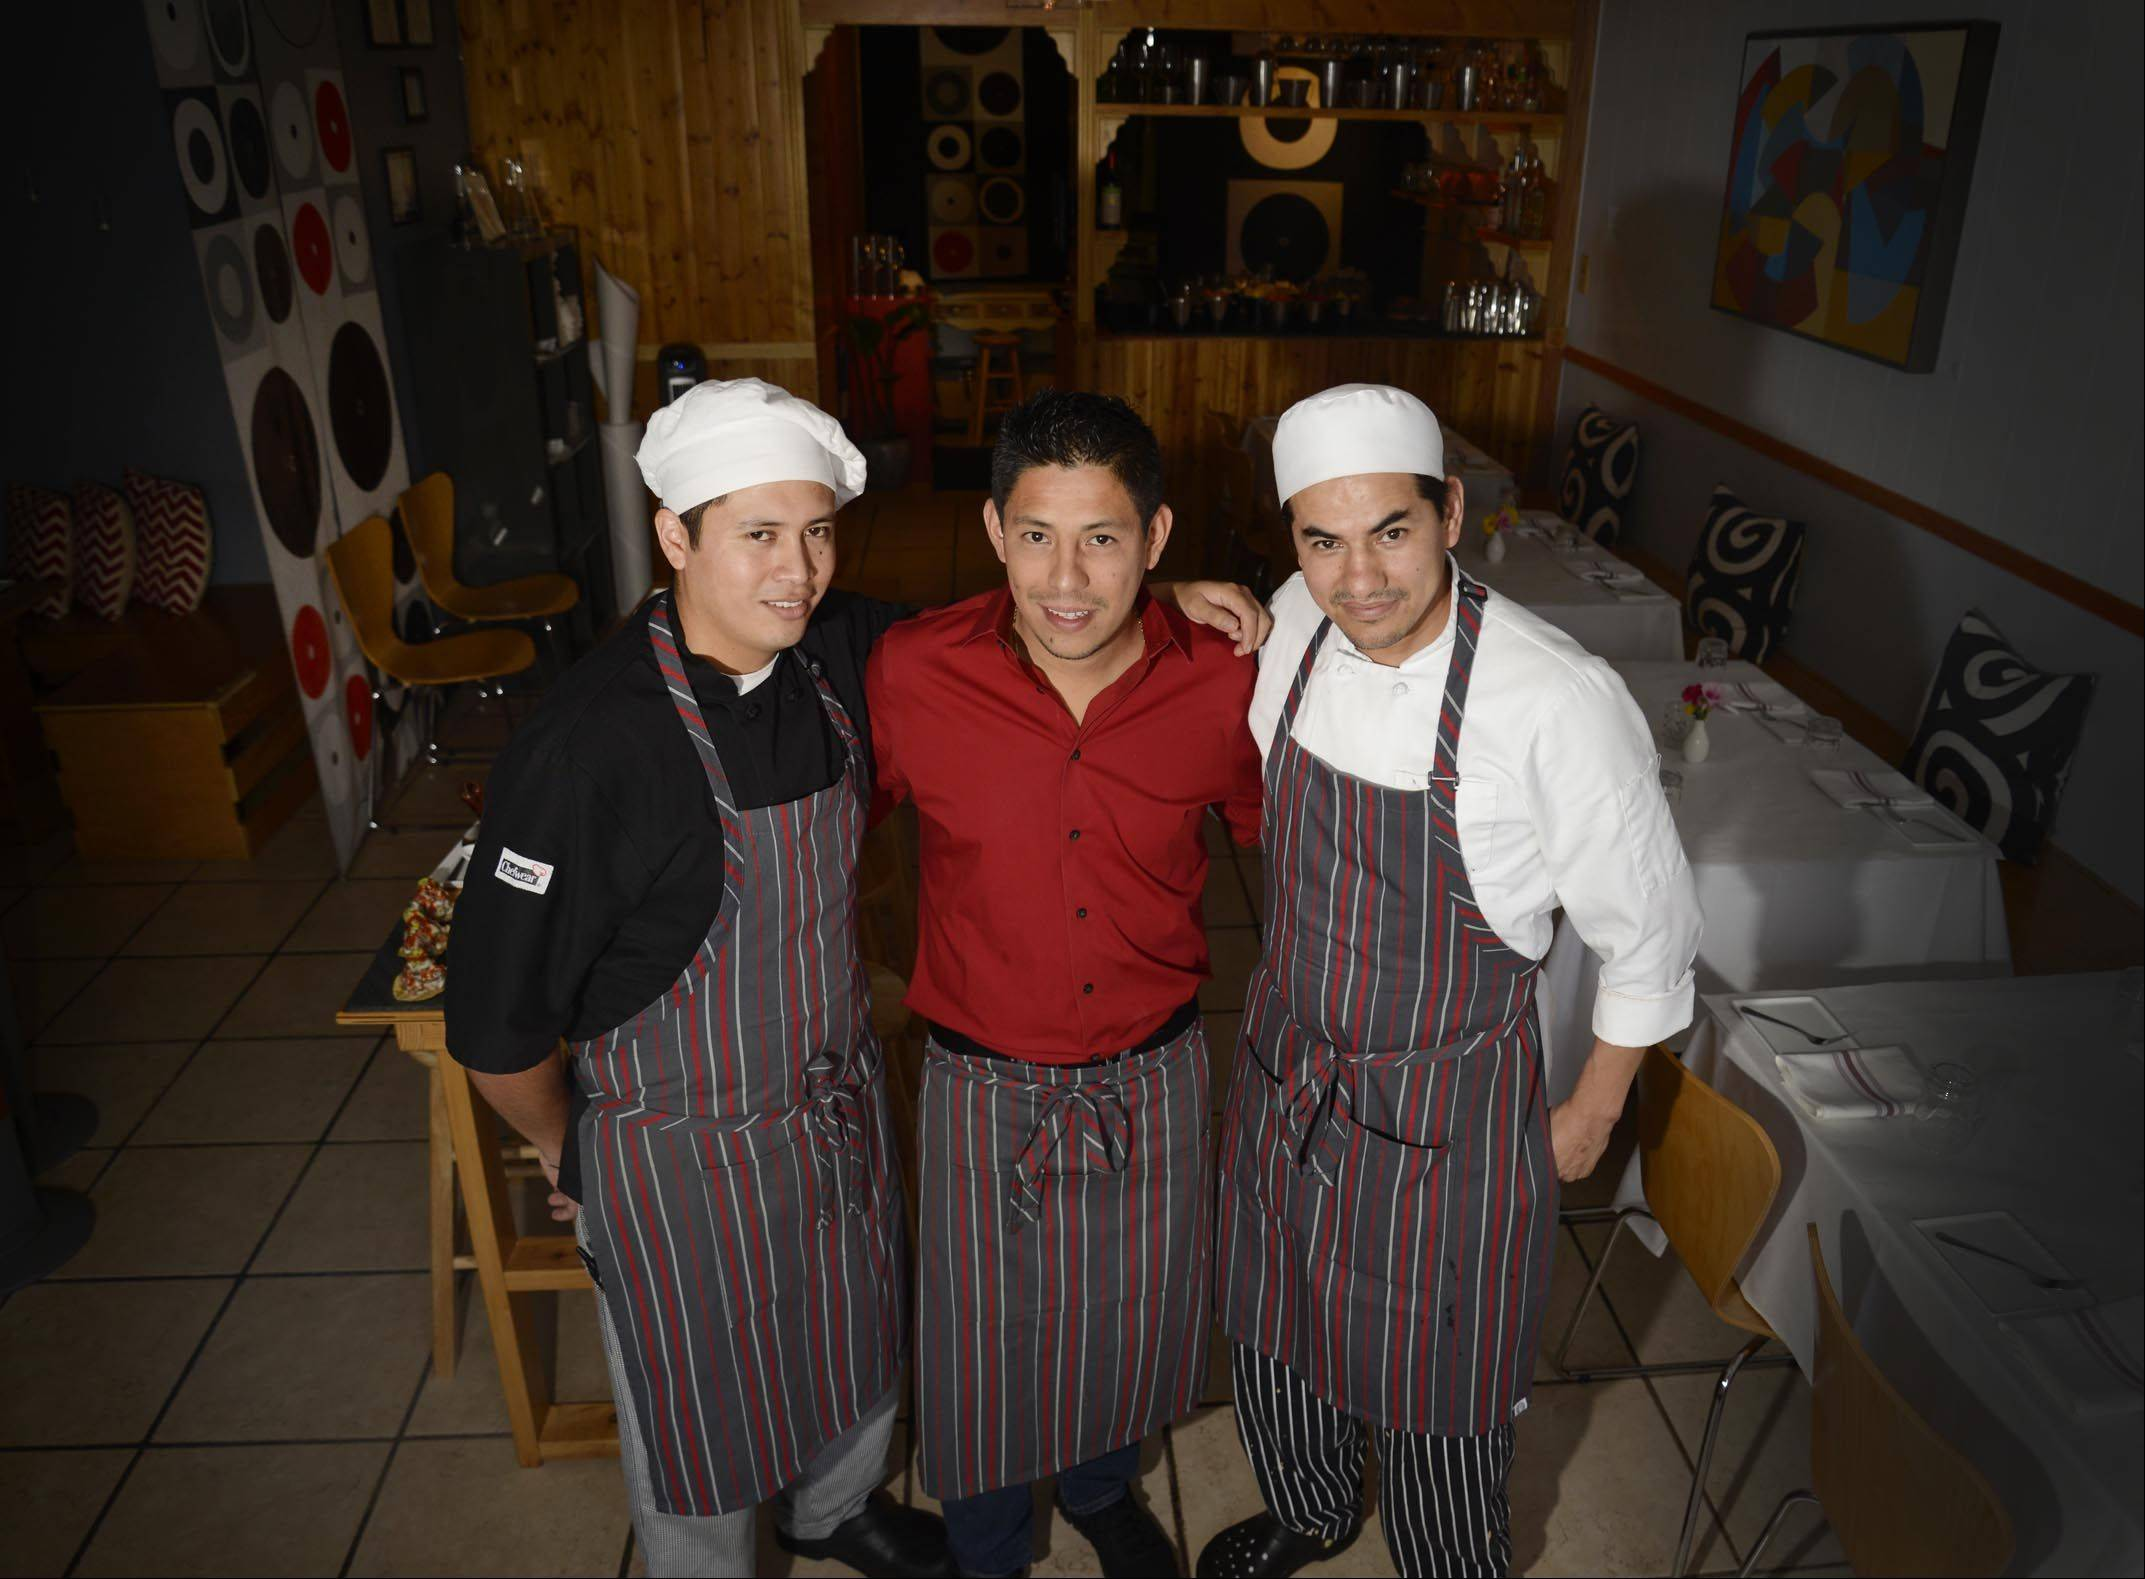 Chef Jose Trejo, left, and his brothers-in-law Miguel Villanueva and chef Roberto Avila run Altiro Latin Fusion in Geneva.